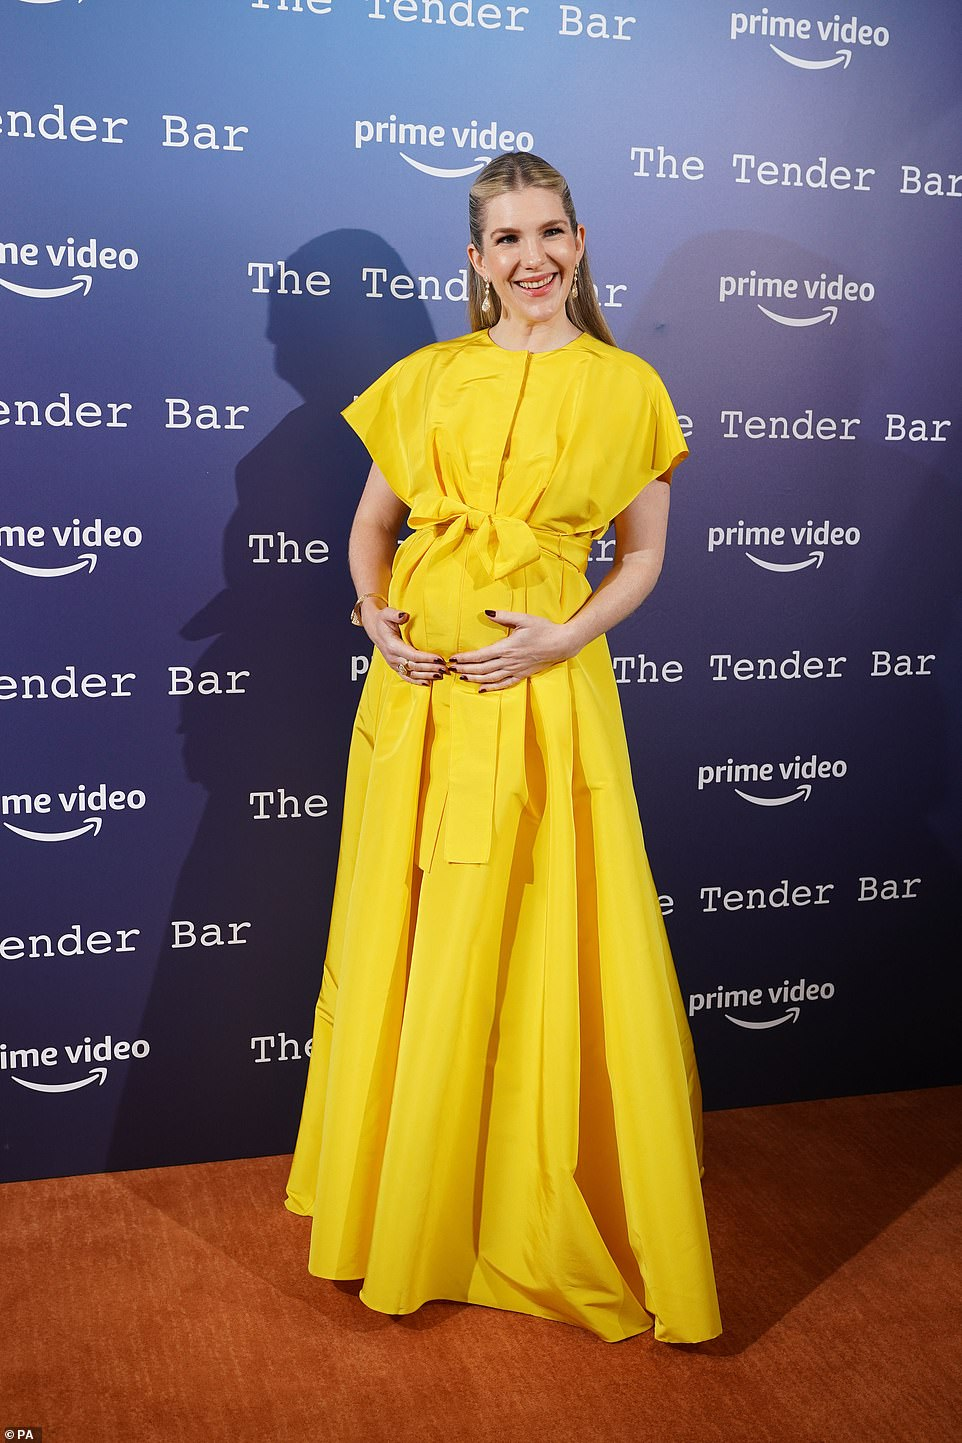 Wow!Lily Rabe was in attendance at the photocall for her latest picture The Tender Bar at the Nomad Hotel on Sunday during the BFI London Film Festival